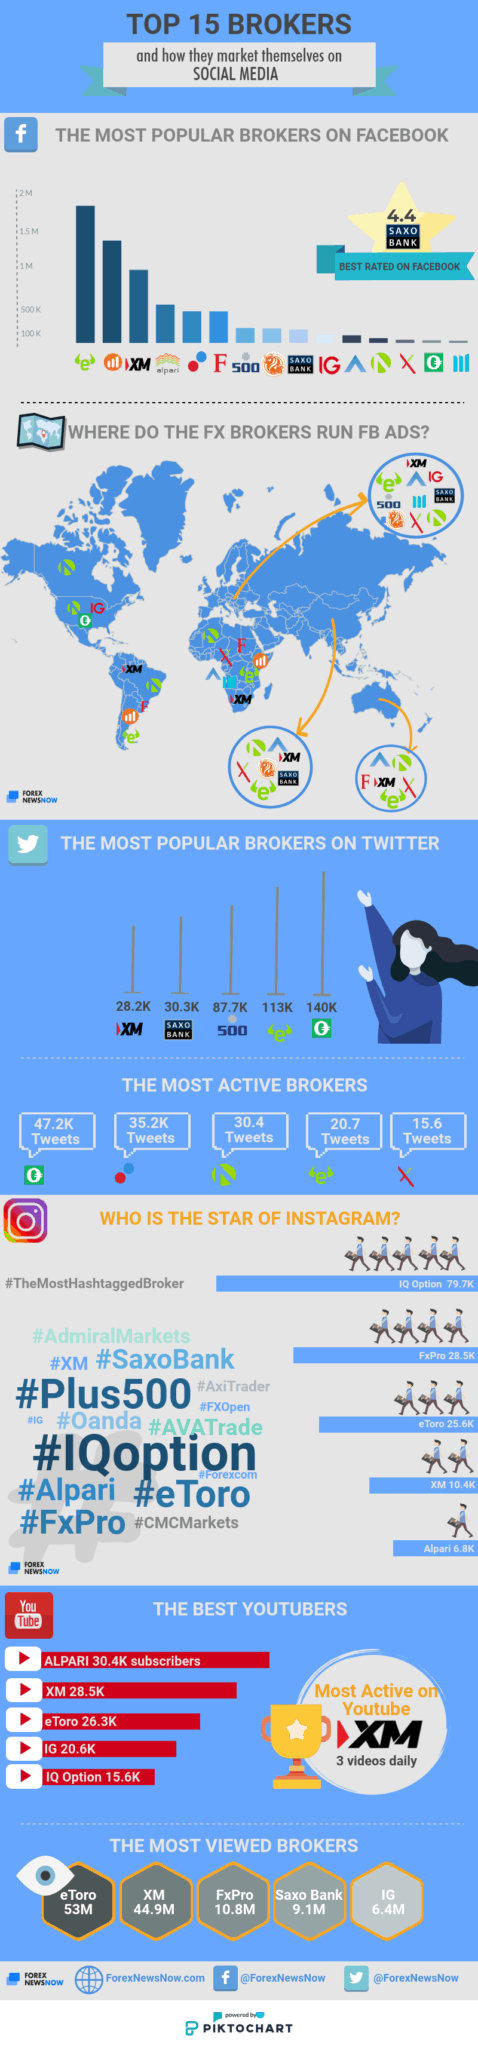 How do TOP 15 FX/CFD Brokers Market themselves on Social media